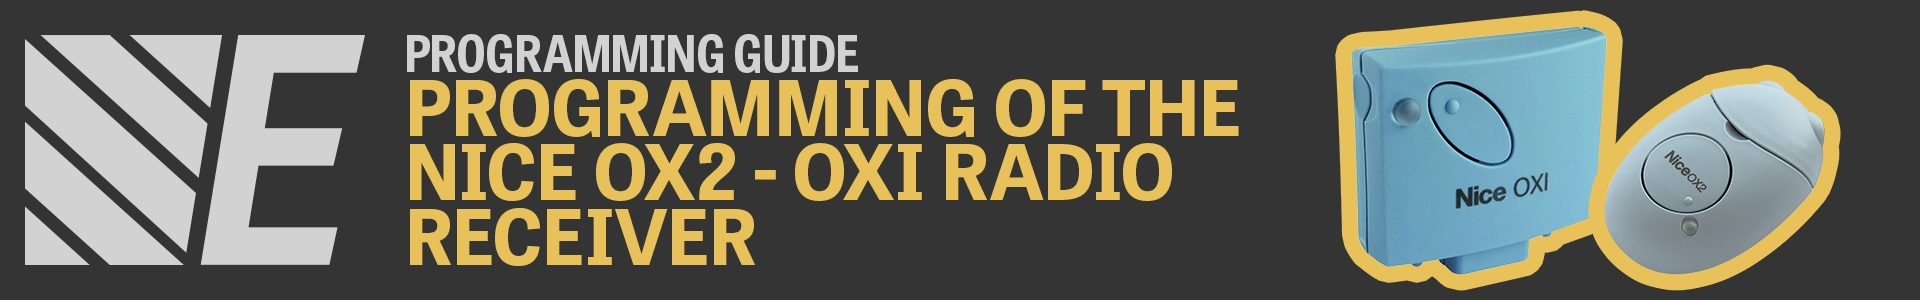 Programming Guide - Programming of the Nice OX2 and OXI Radio Receivers